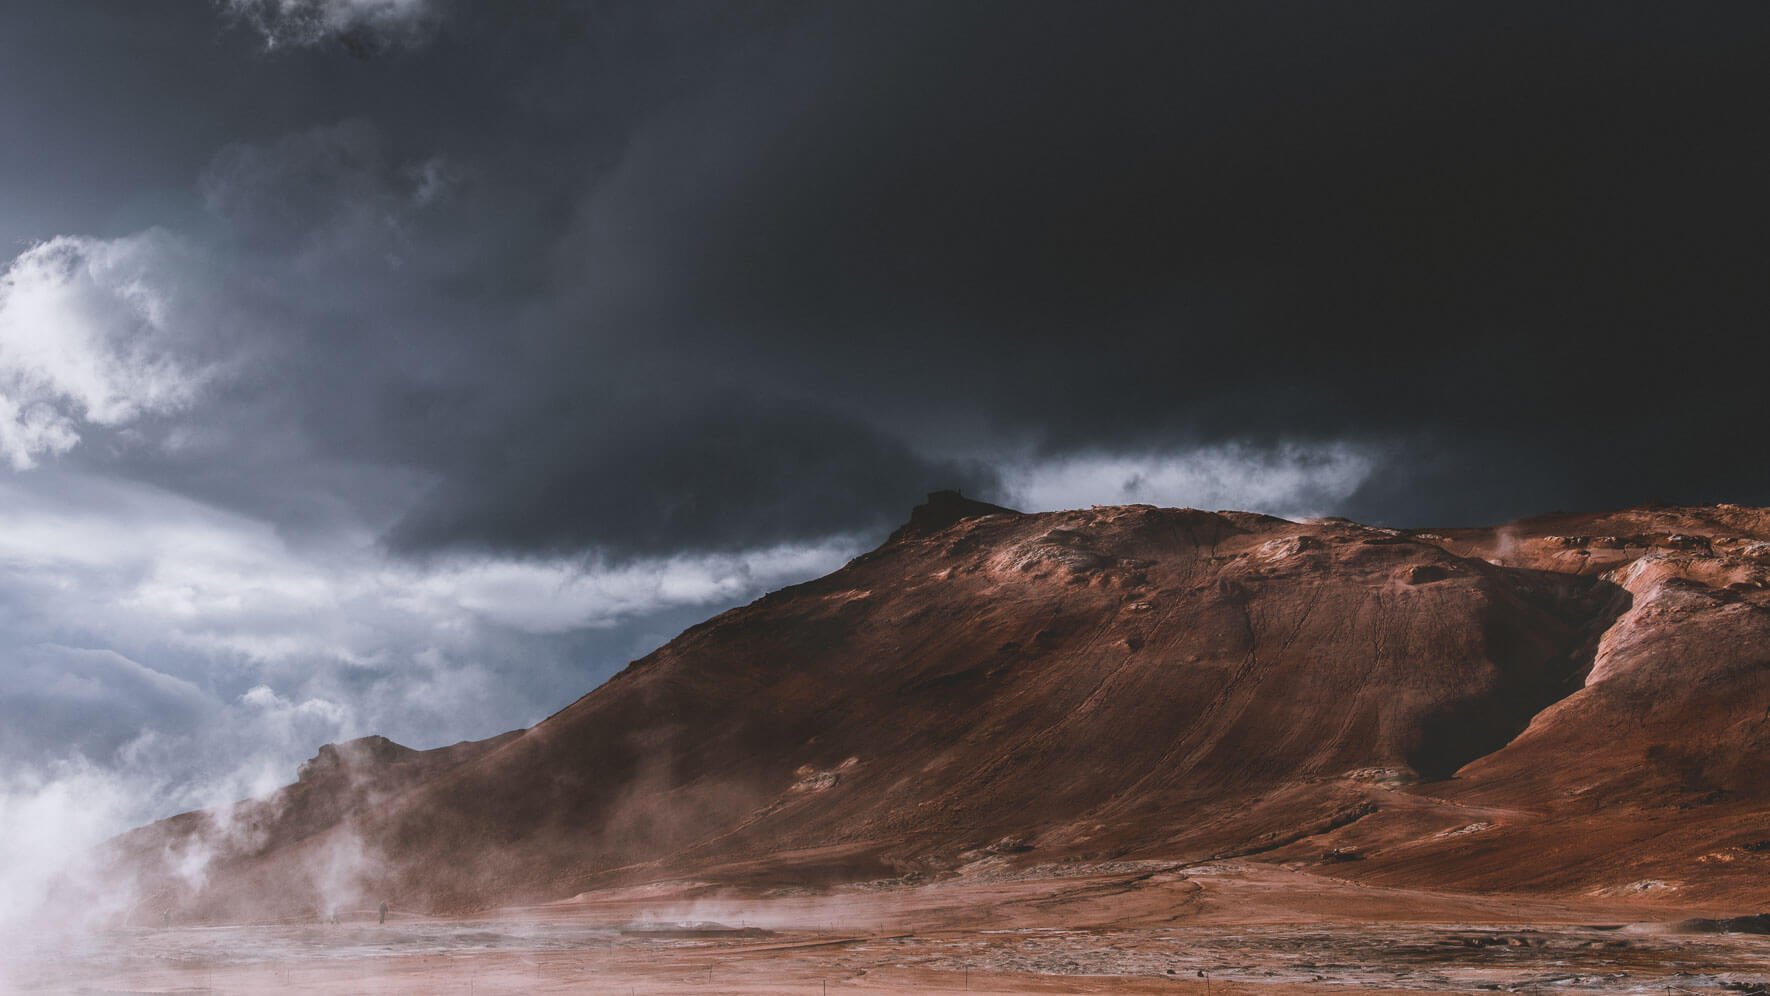 Landscape and fine art photography of the North by Jan Erik Waider